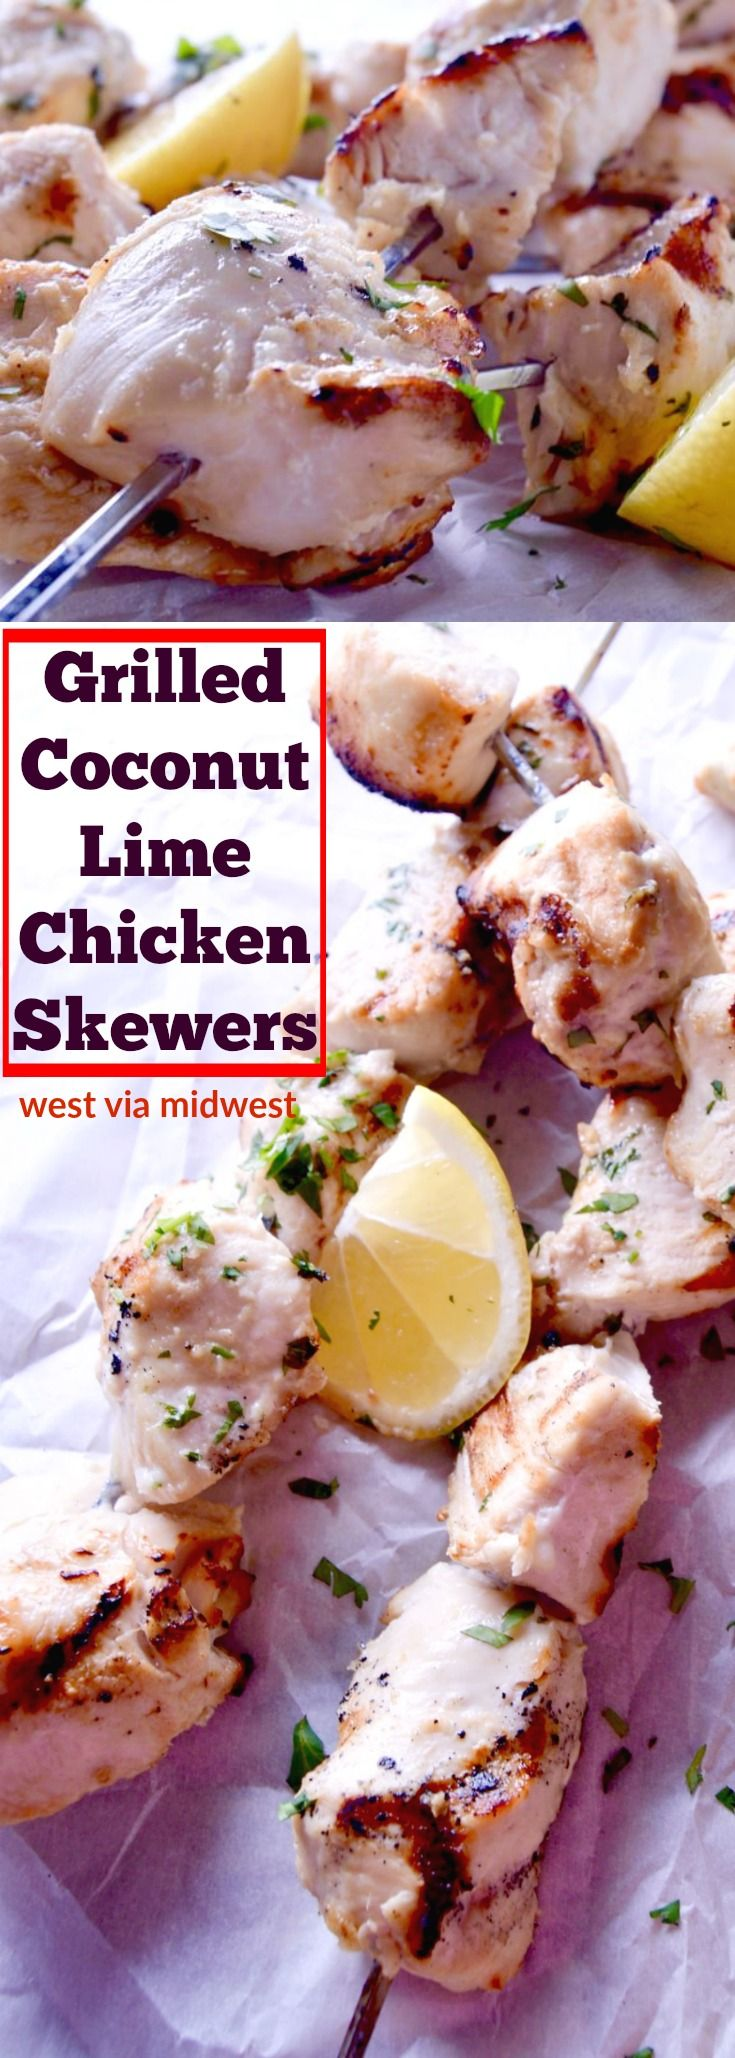 Subtle flavors make this recipe for Grilled Coconut Lime Chicken Kebabs perfect for a casual BBQ.  Juicy, tender and a slight smokey flavor they are ideal for grilling! via @westviamidwest